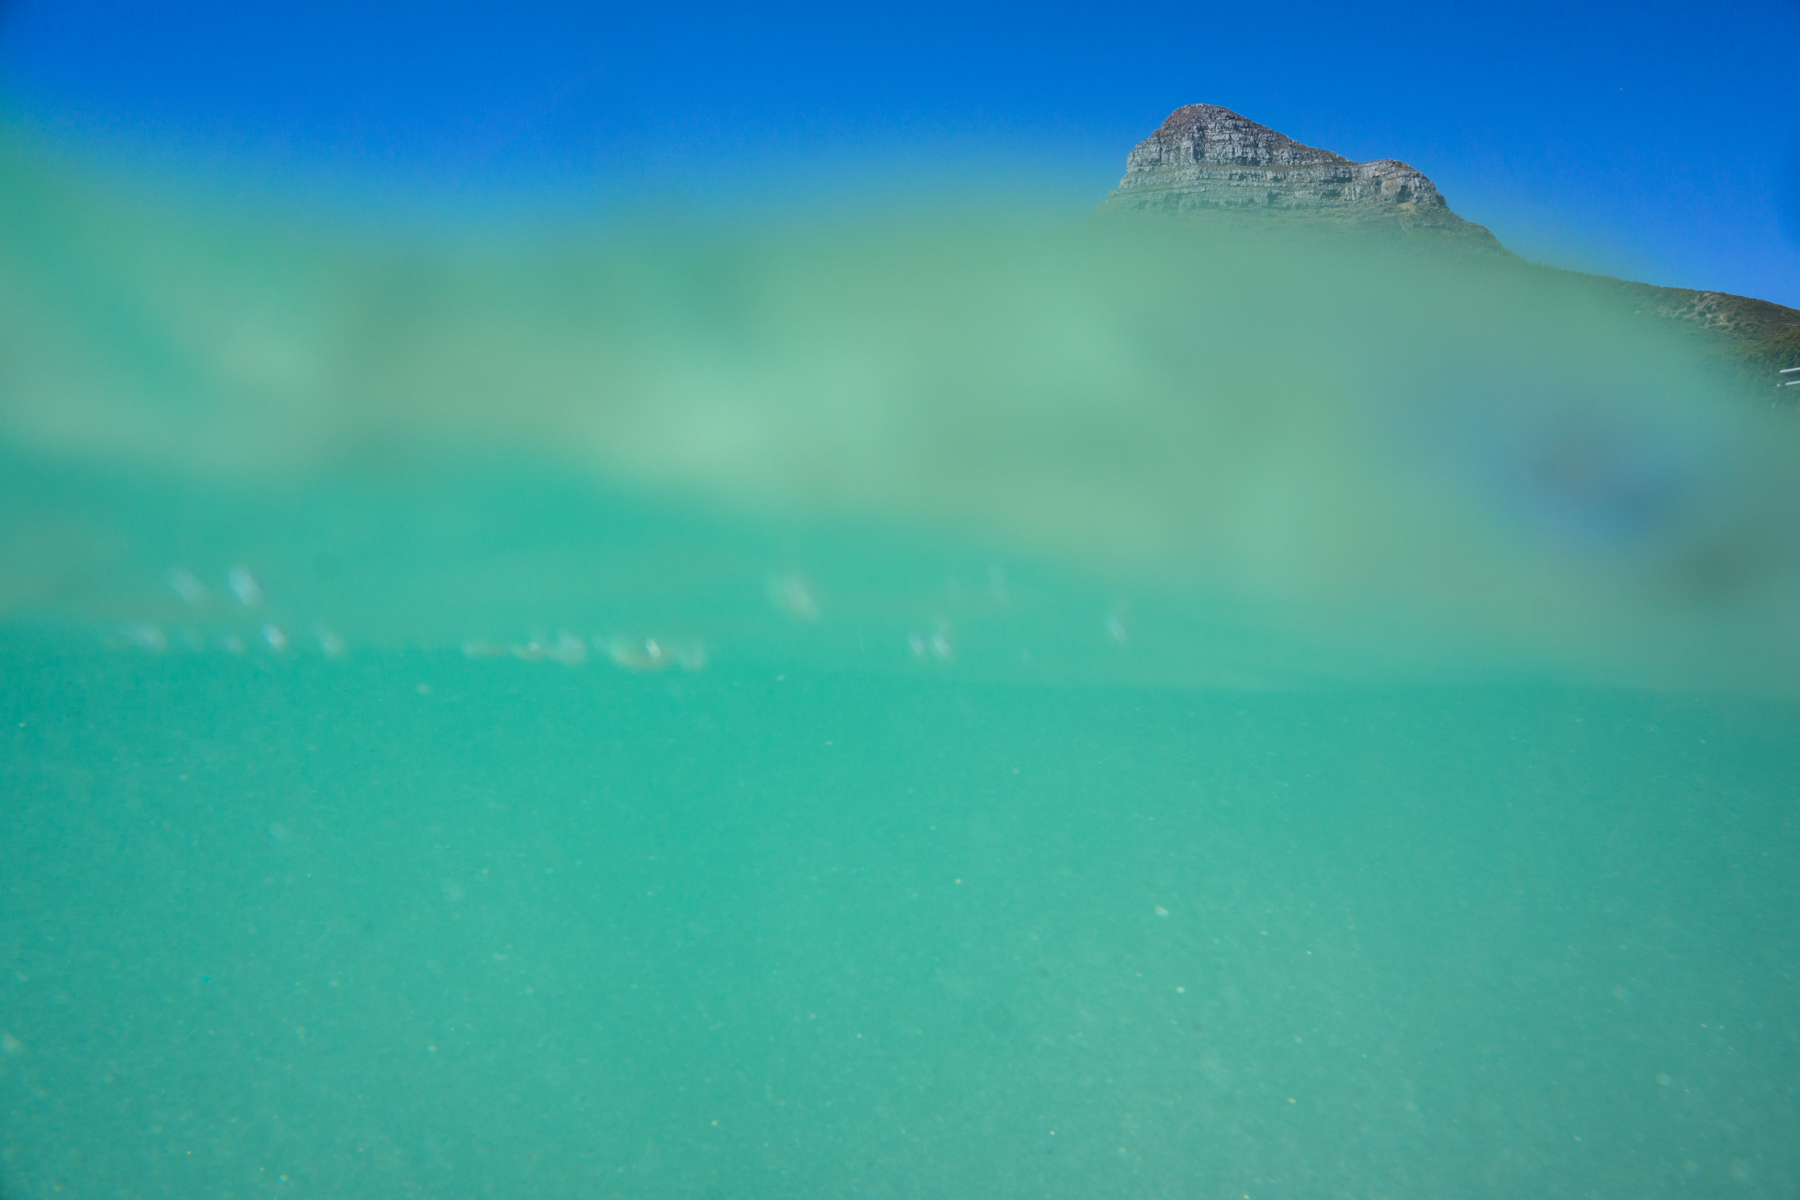 Lionshead mountain seen partially from underwater in Cape Town, South Africa.